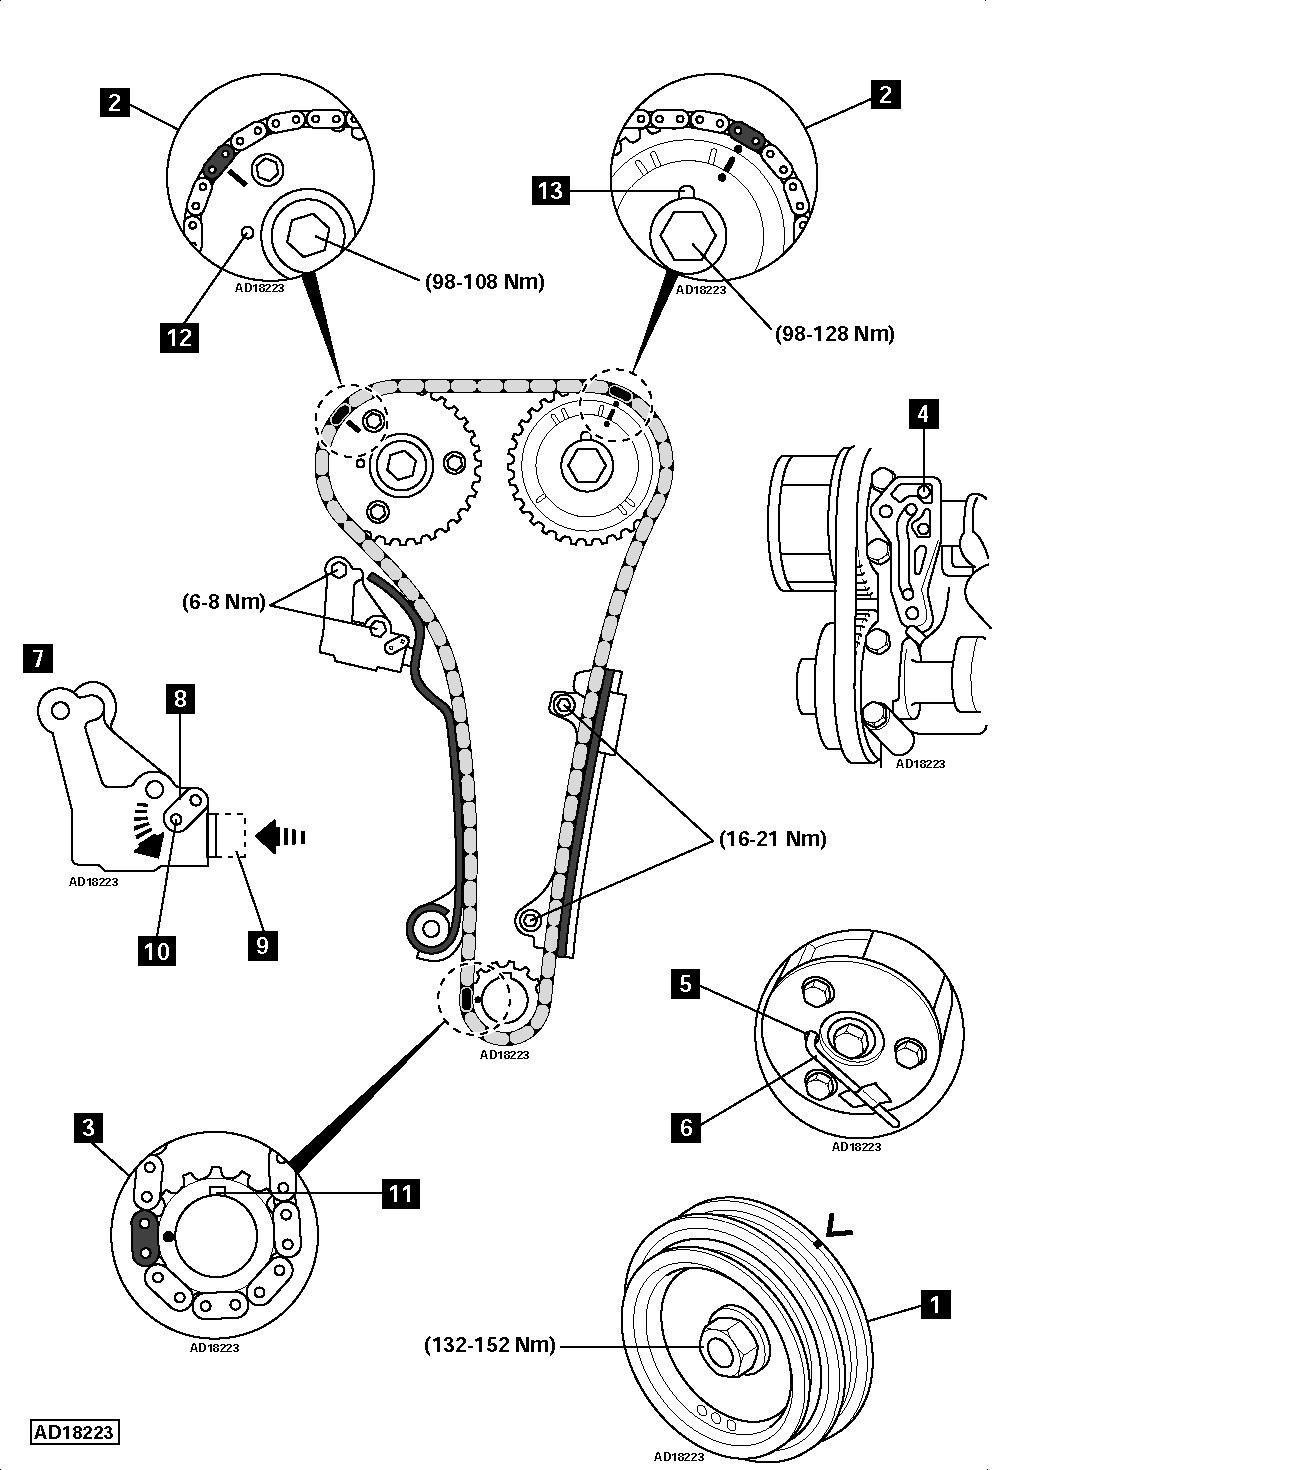 Nissan Almera 2003 Timing Chain Almera Owners Club